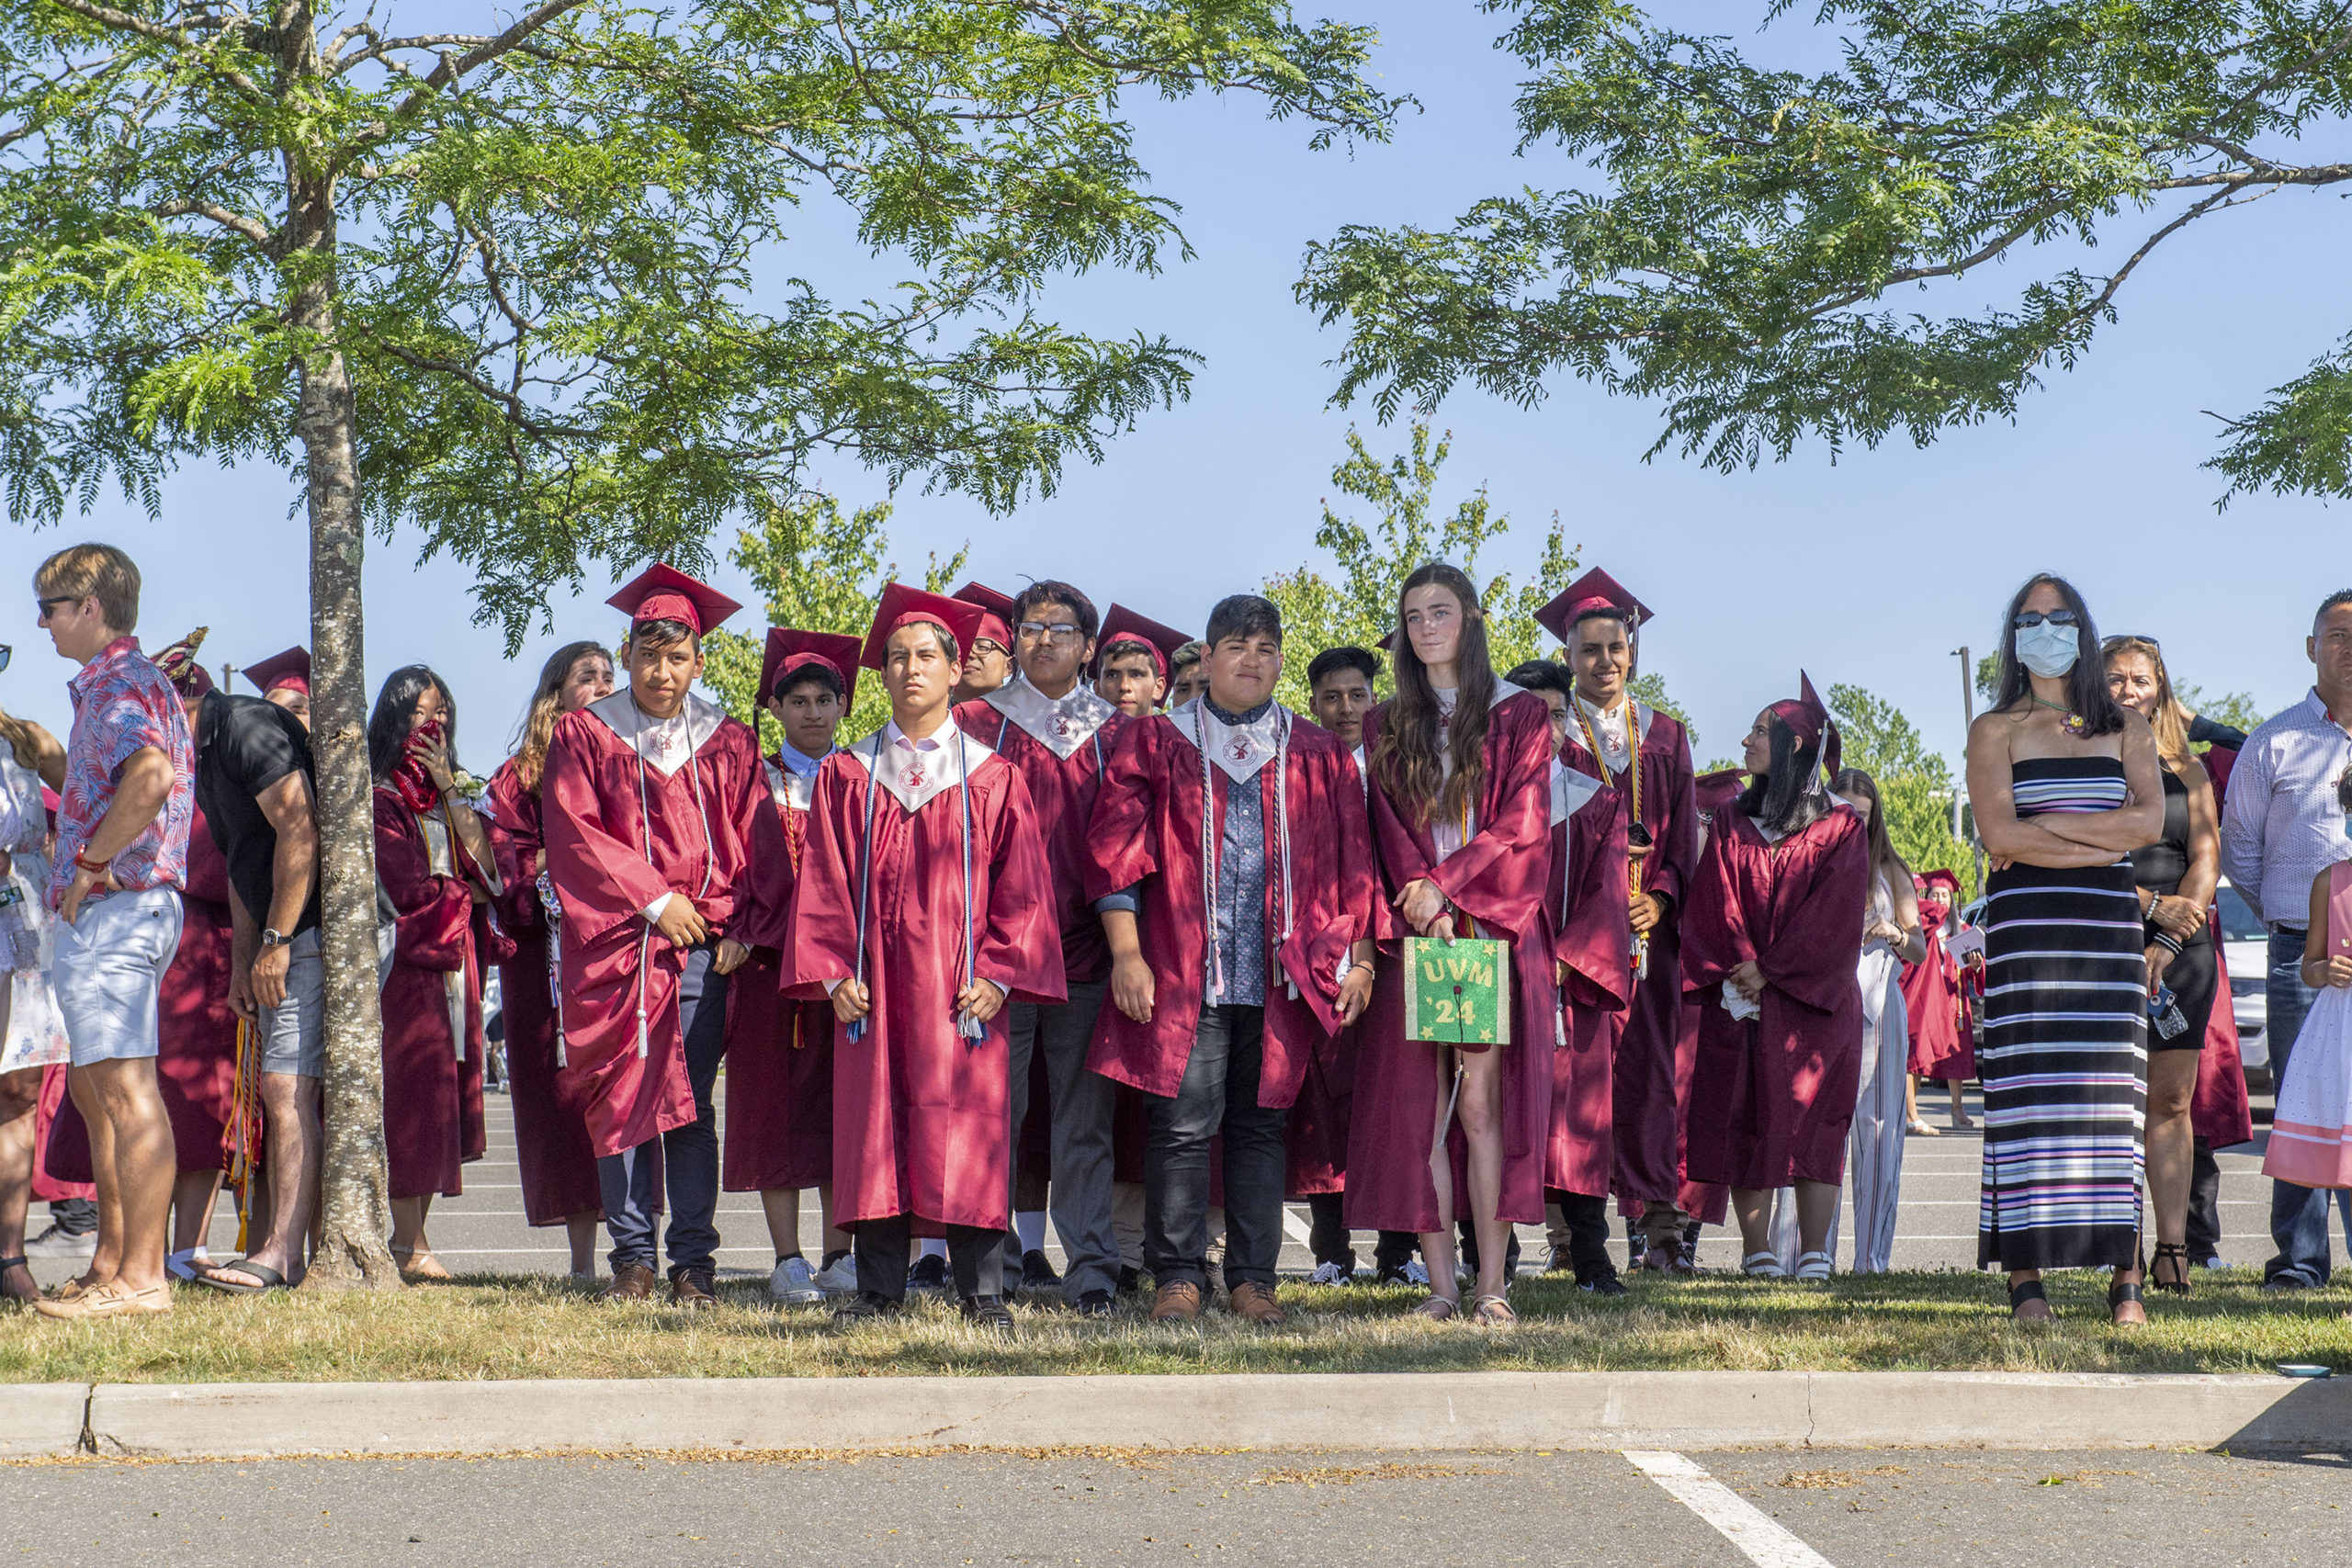 Seniors and their families watched the ceremony from the shade of some trees in the parking lot during the 2020 graduation ceremony at the East Hampton High School on Friday.